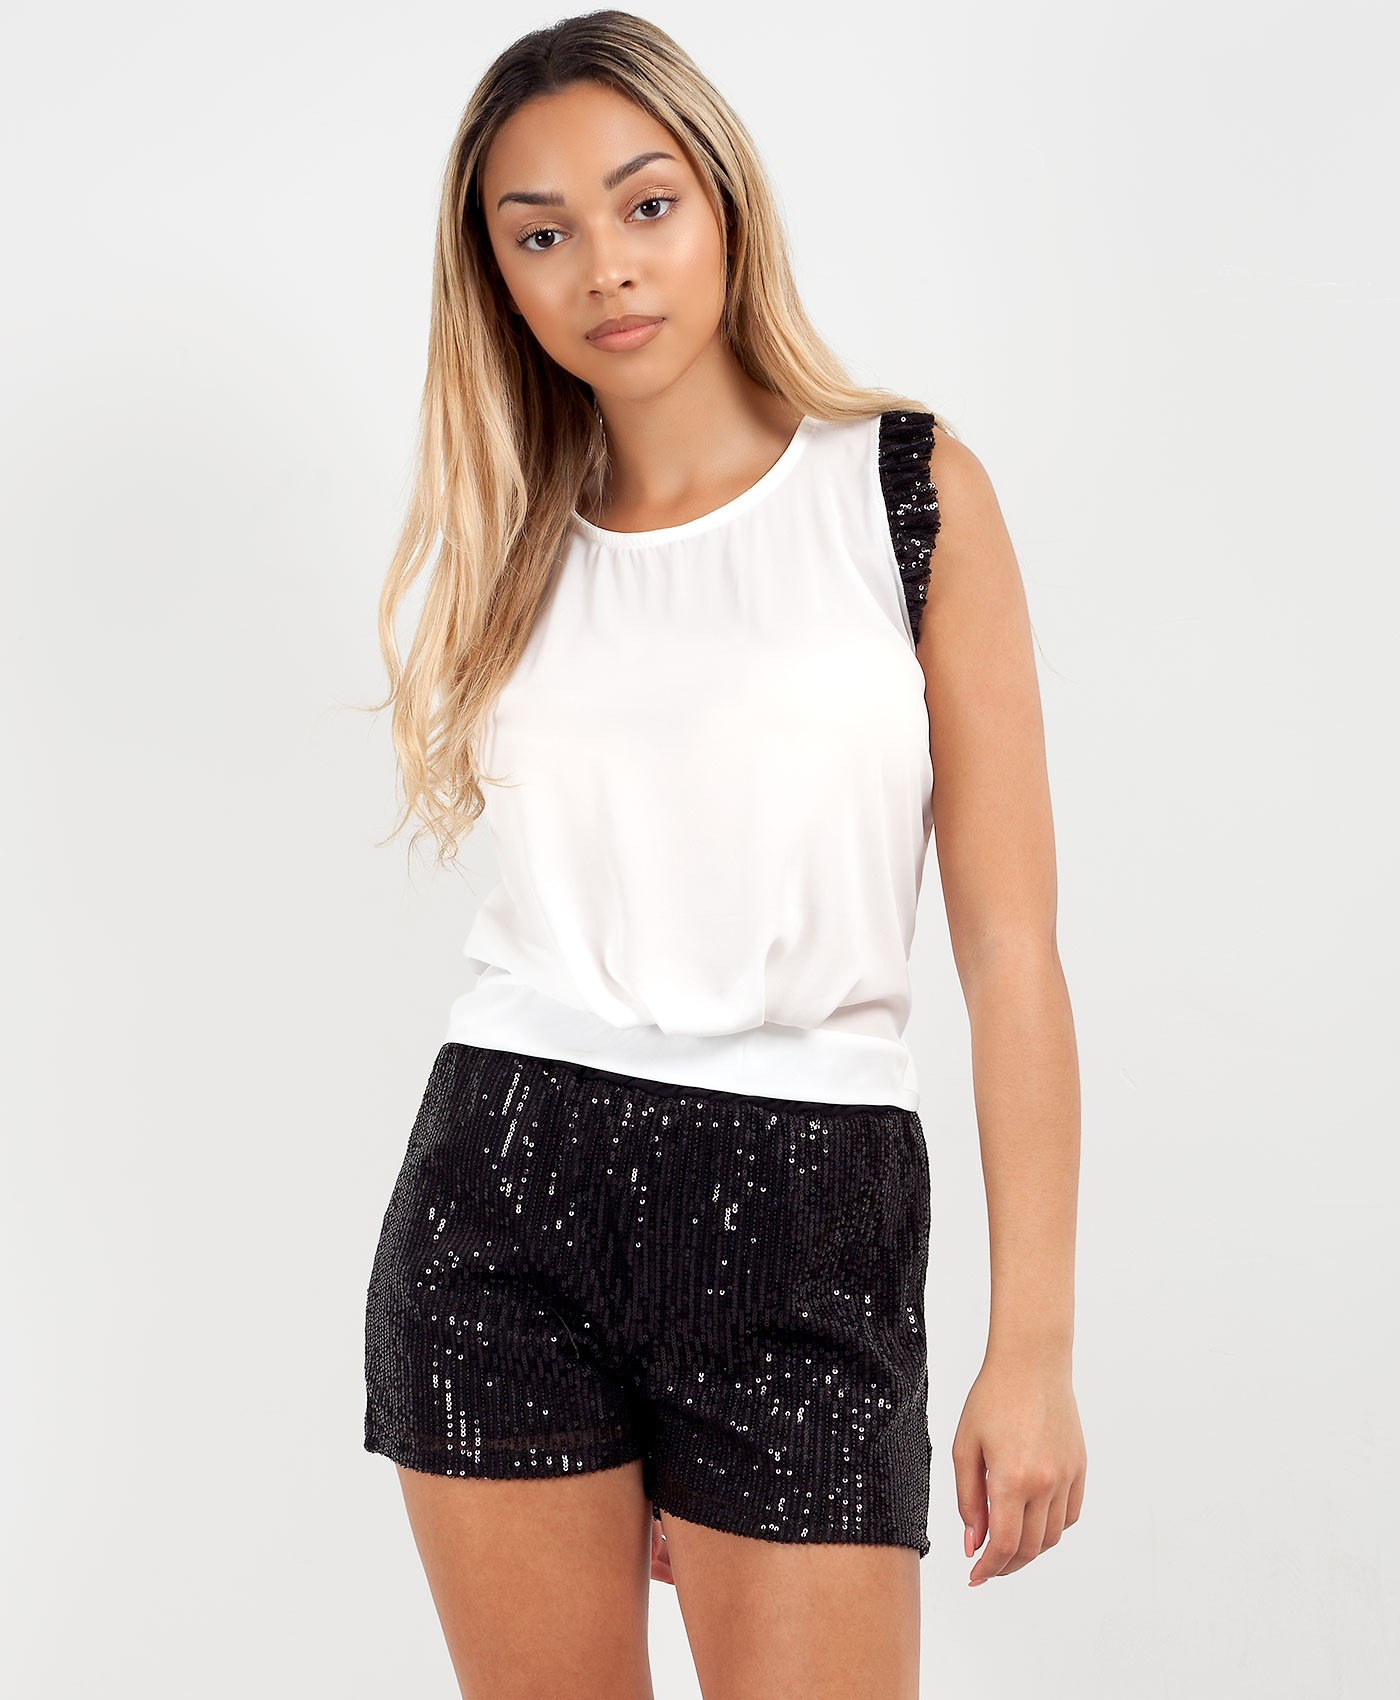 Black-Sequin-Shorts-&-Frill-Sleeve-Vest-Co-Ord-Set-1